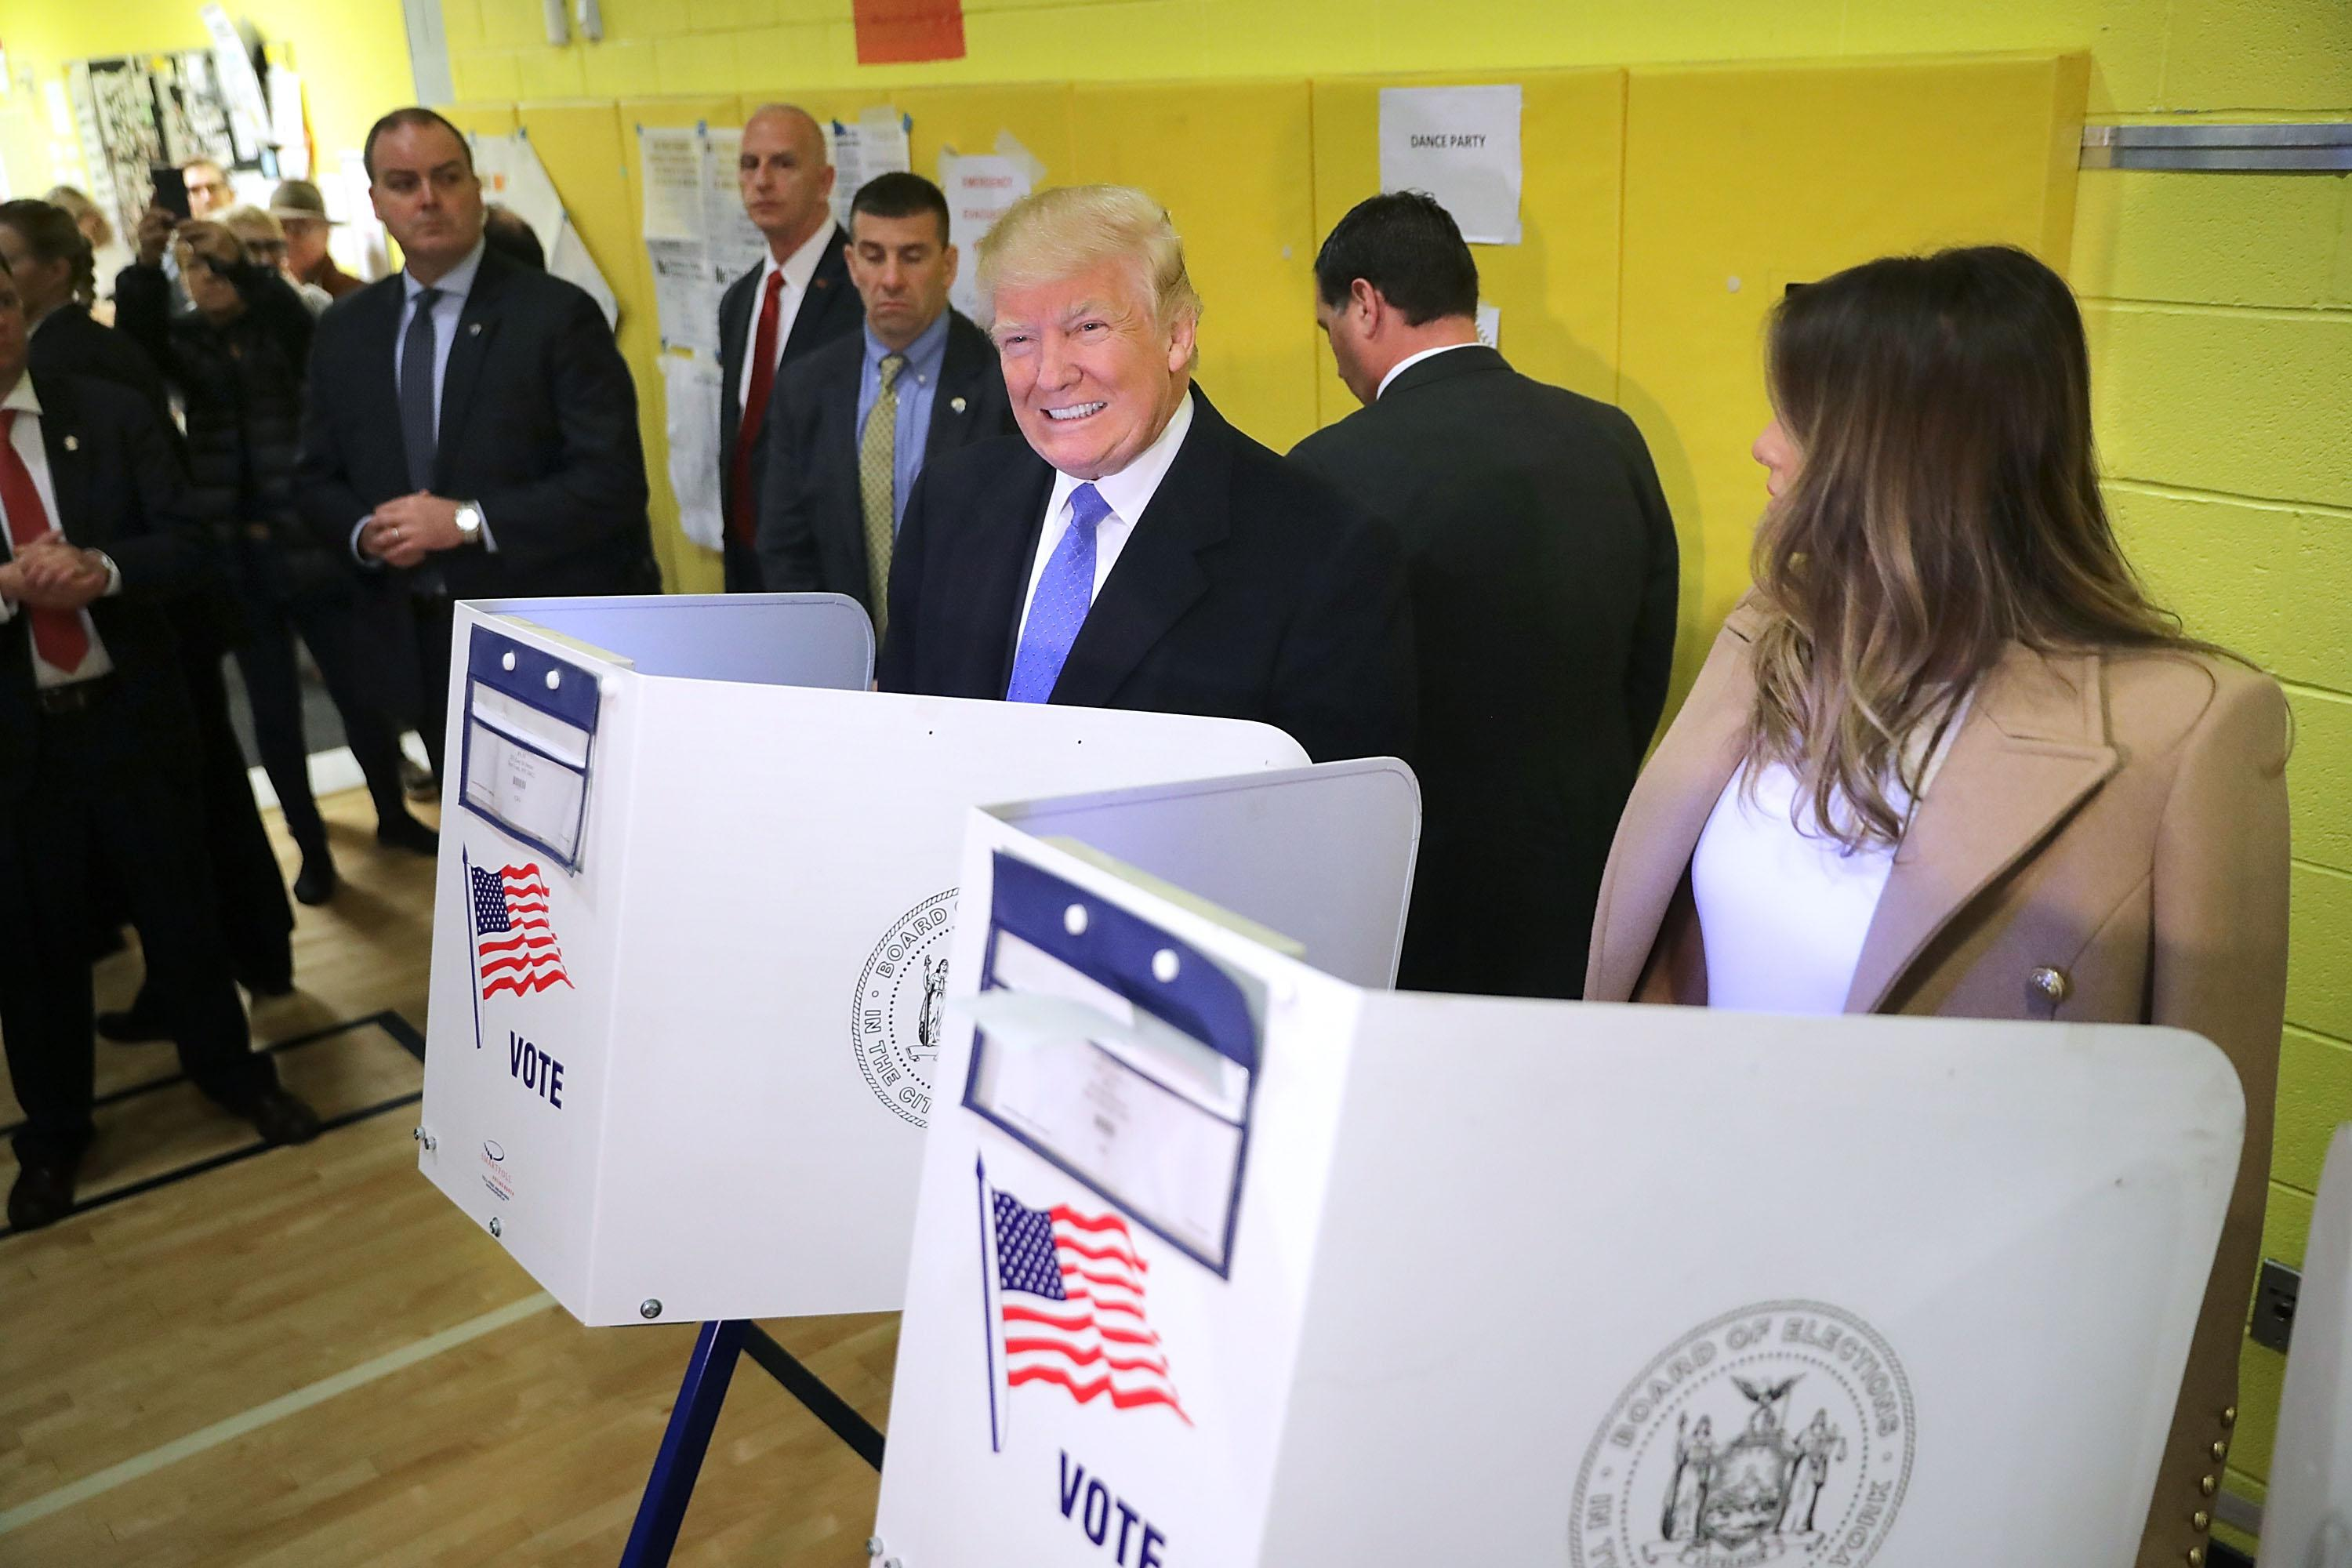 Donald Trump and his wife Melania Trump cast their votes on Election Day at PS 59 November 8, 2016 in New York City.